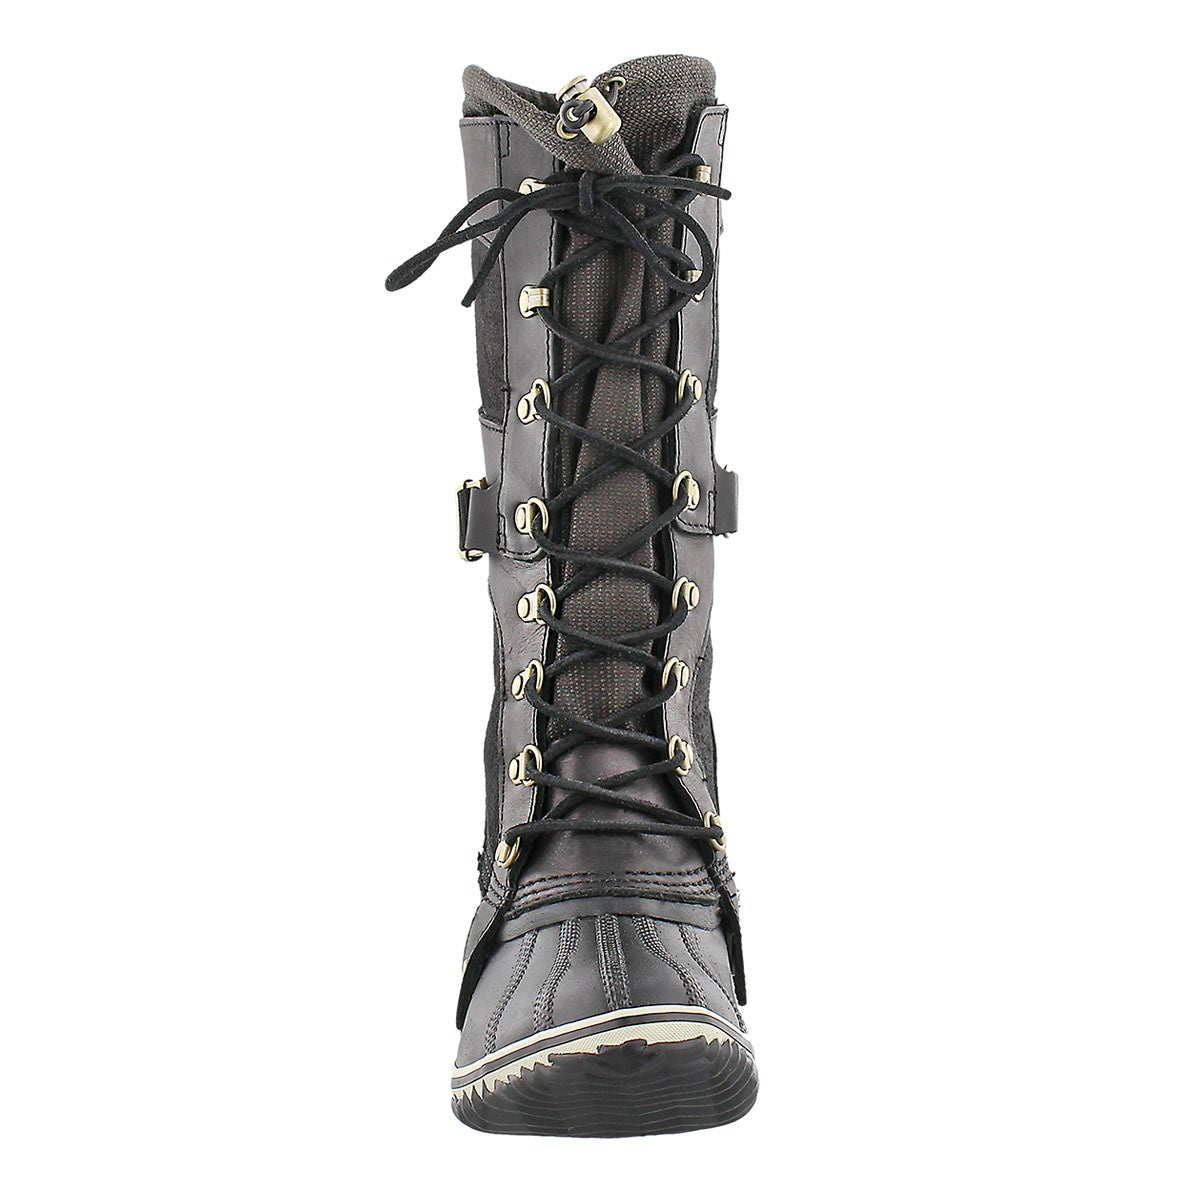 Lds Conquest Carly black knee high boot